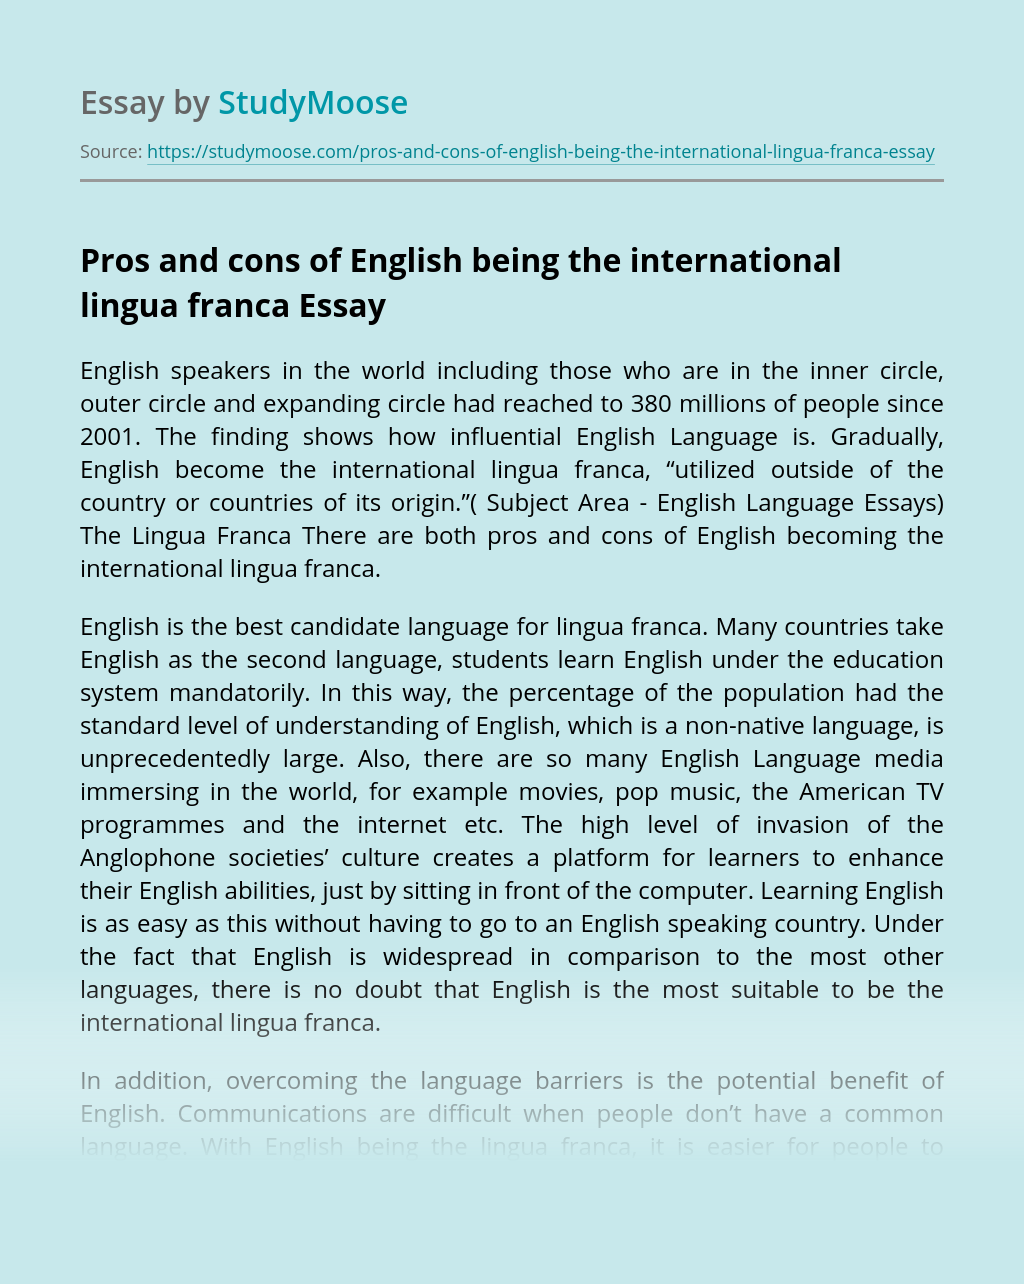 Pros and cons of English being the international lingua franca